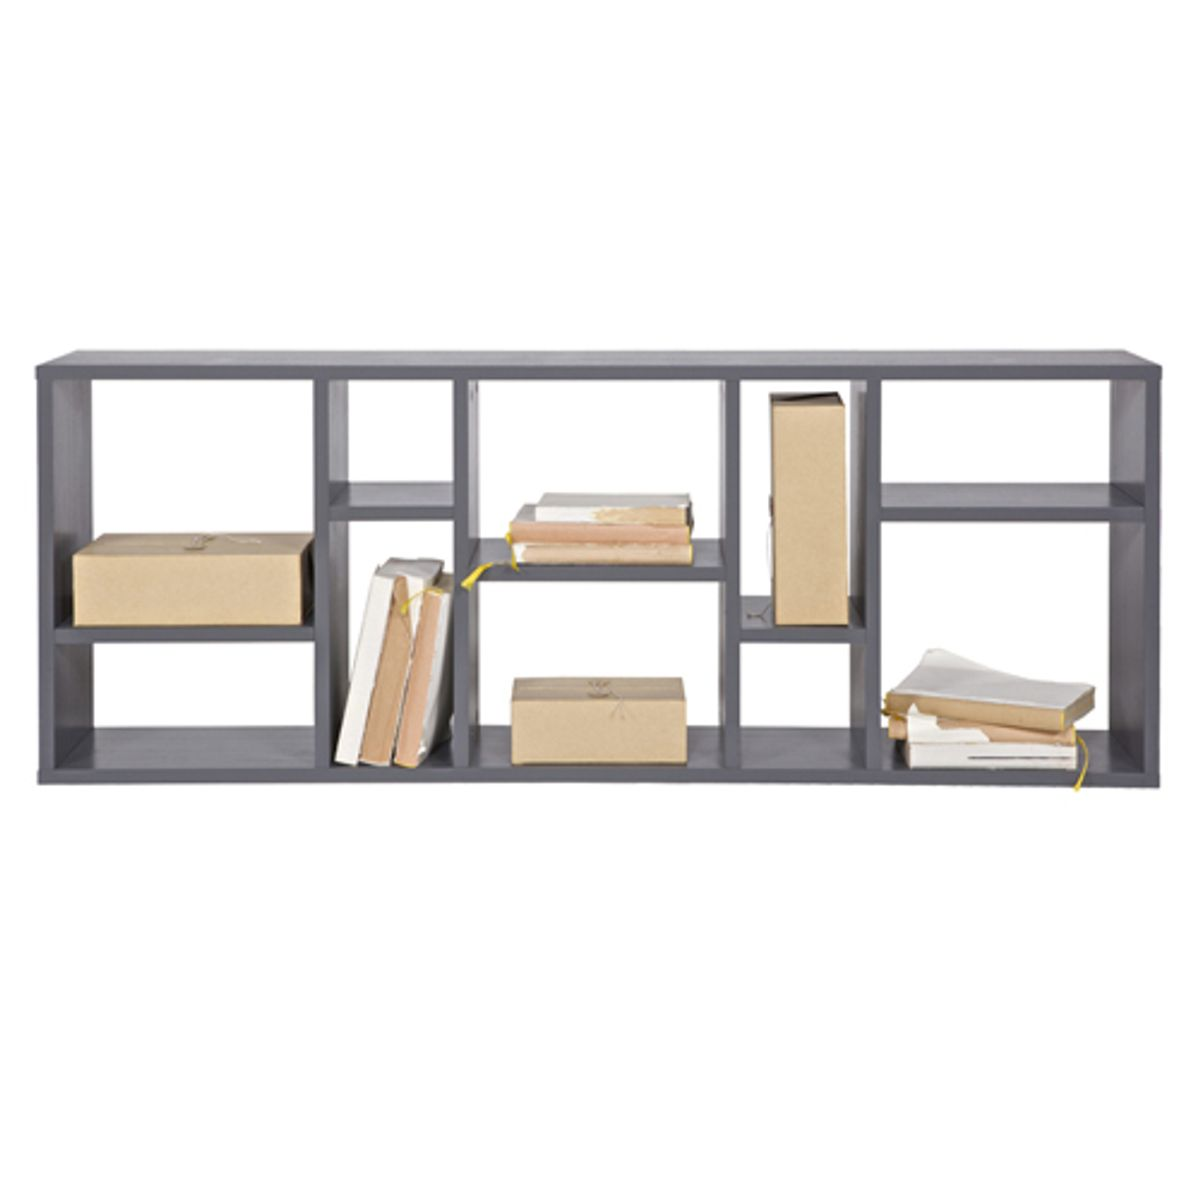 etag re biblioth que en pin gris fonc horizon fabrication. Black Bedroom Furniture Sets. Home Design Ideas